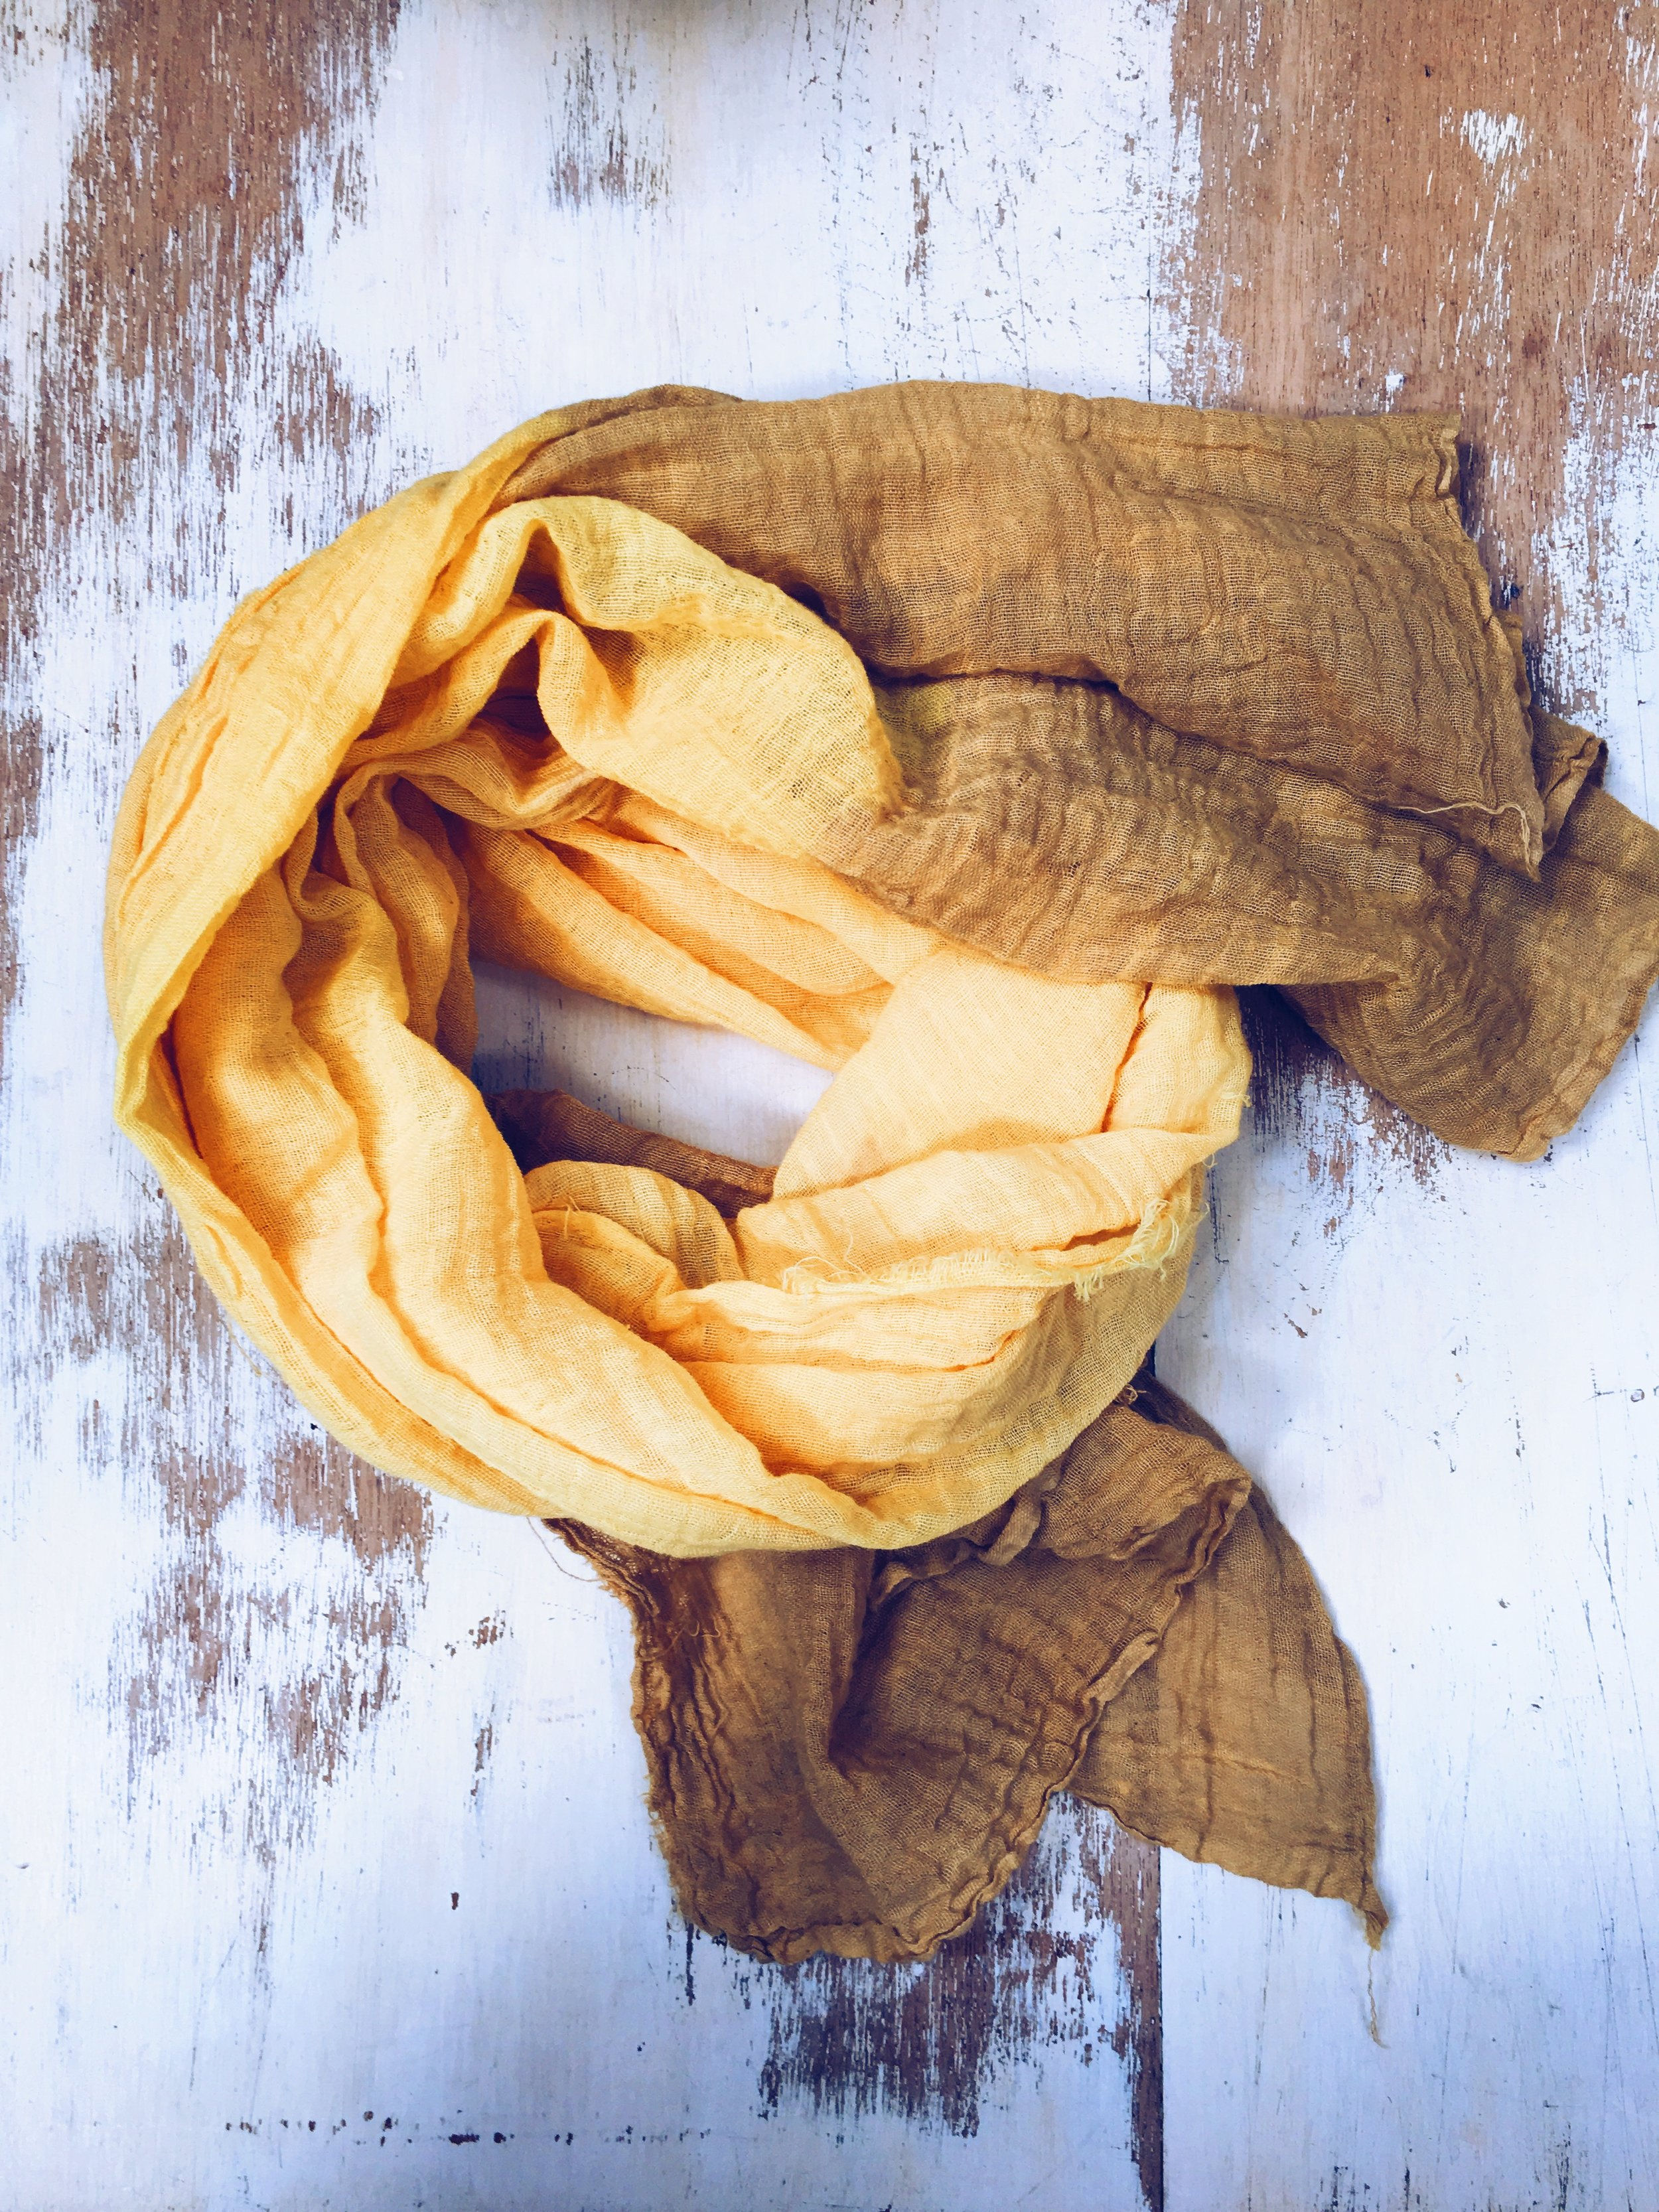 Scarf dyed using Tumeric and dipped in the iron bath, altering the colour.